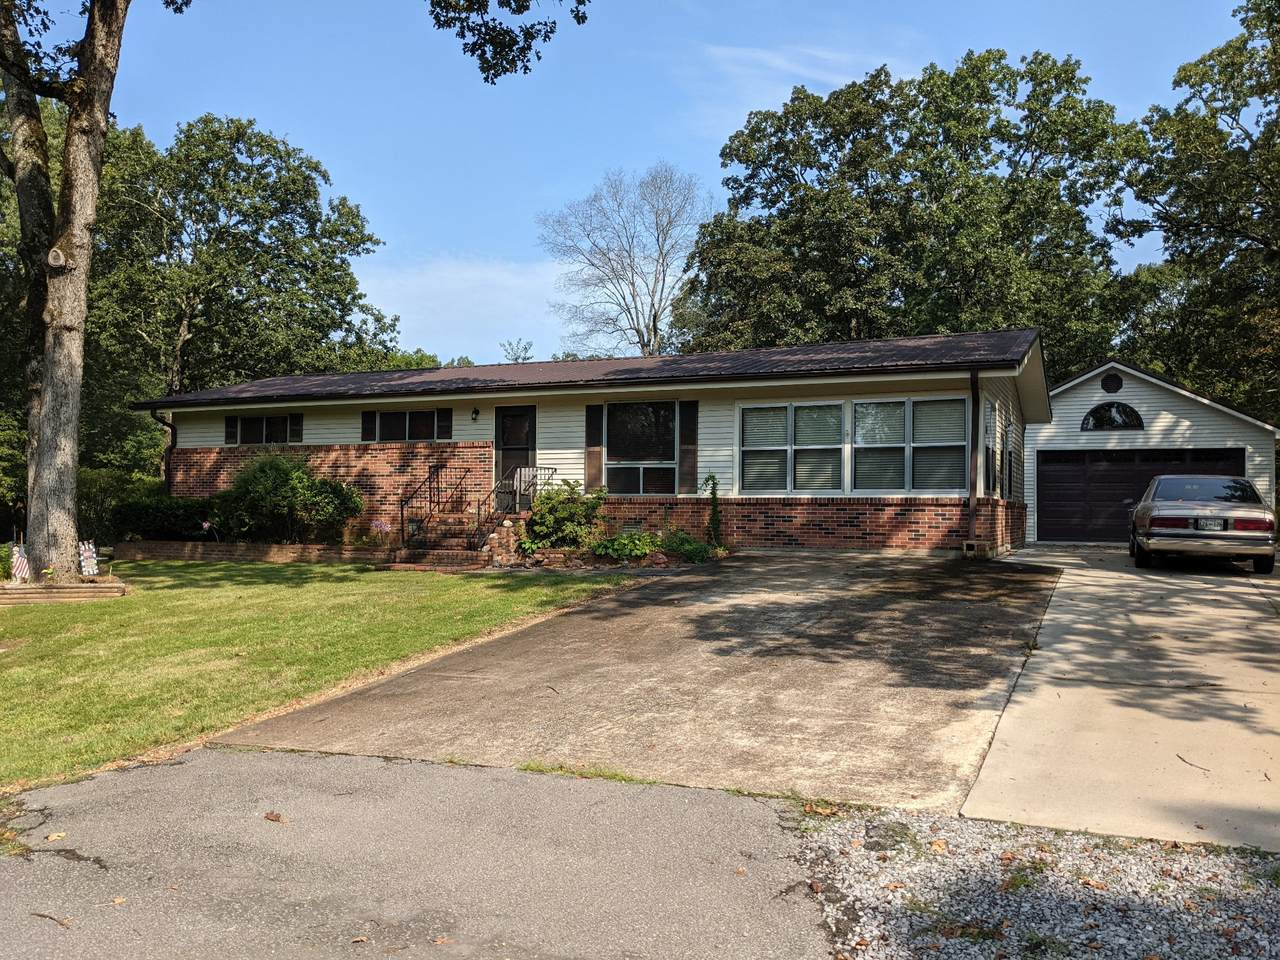 189 Russwood Dr - Photo 1